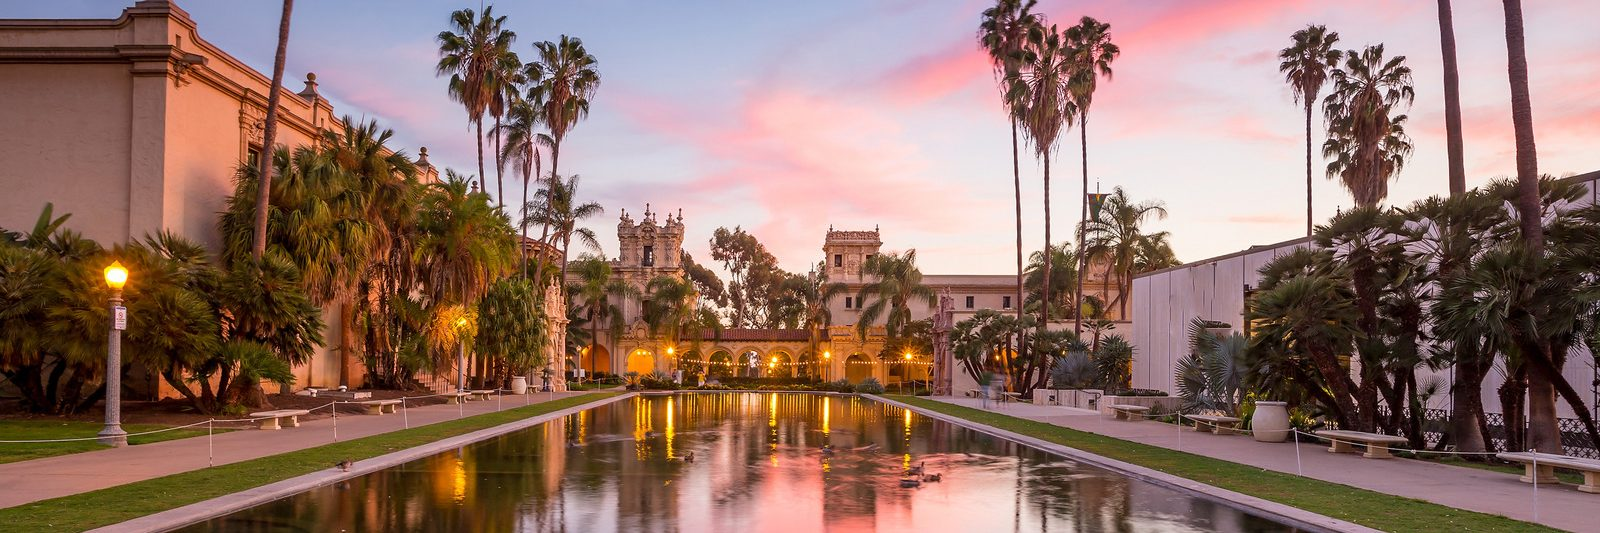 Casa De Balboa at sunset, Balboa Park, San Diego